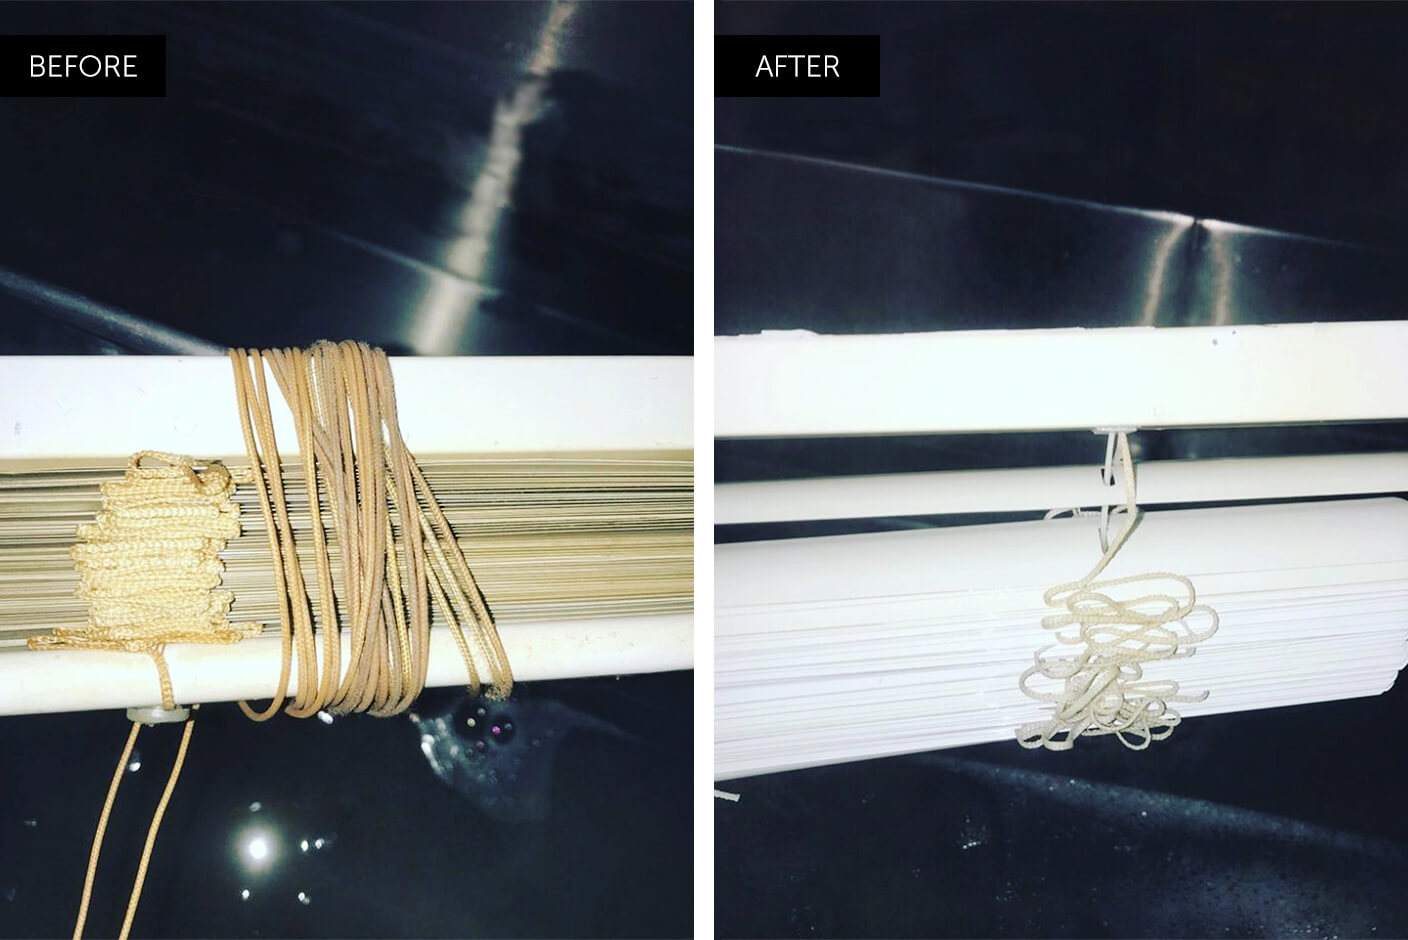 ultrasonic blind cleaning before and after